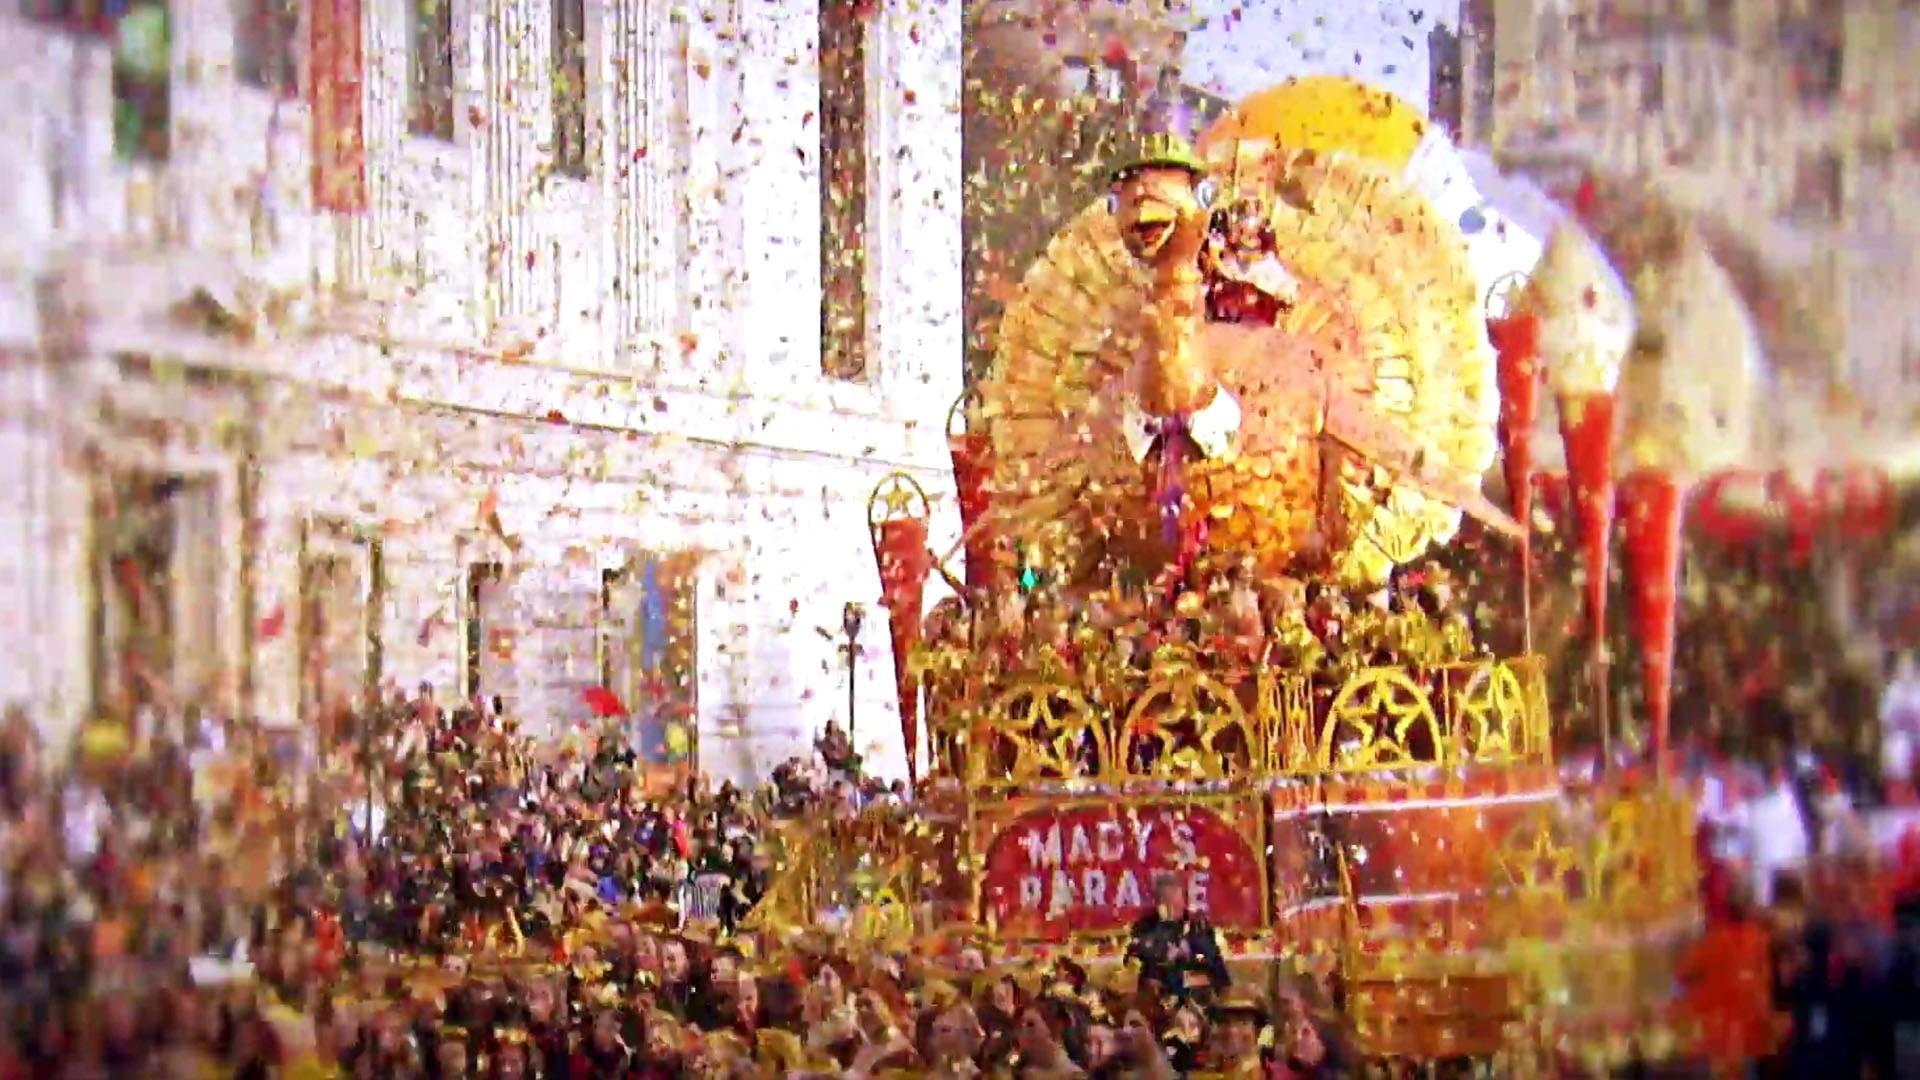 How this year's Macy's Thanksgiving Day Parade will be different